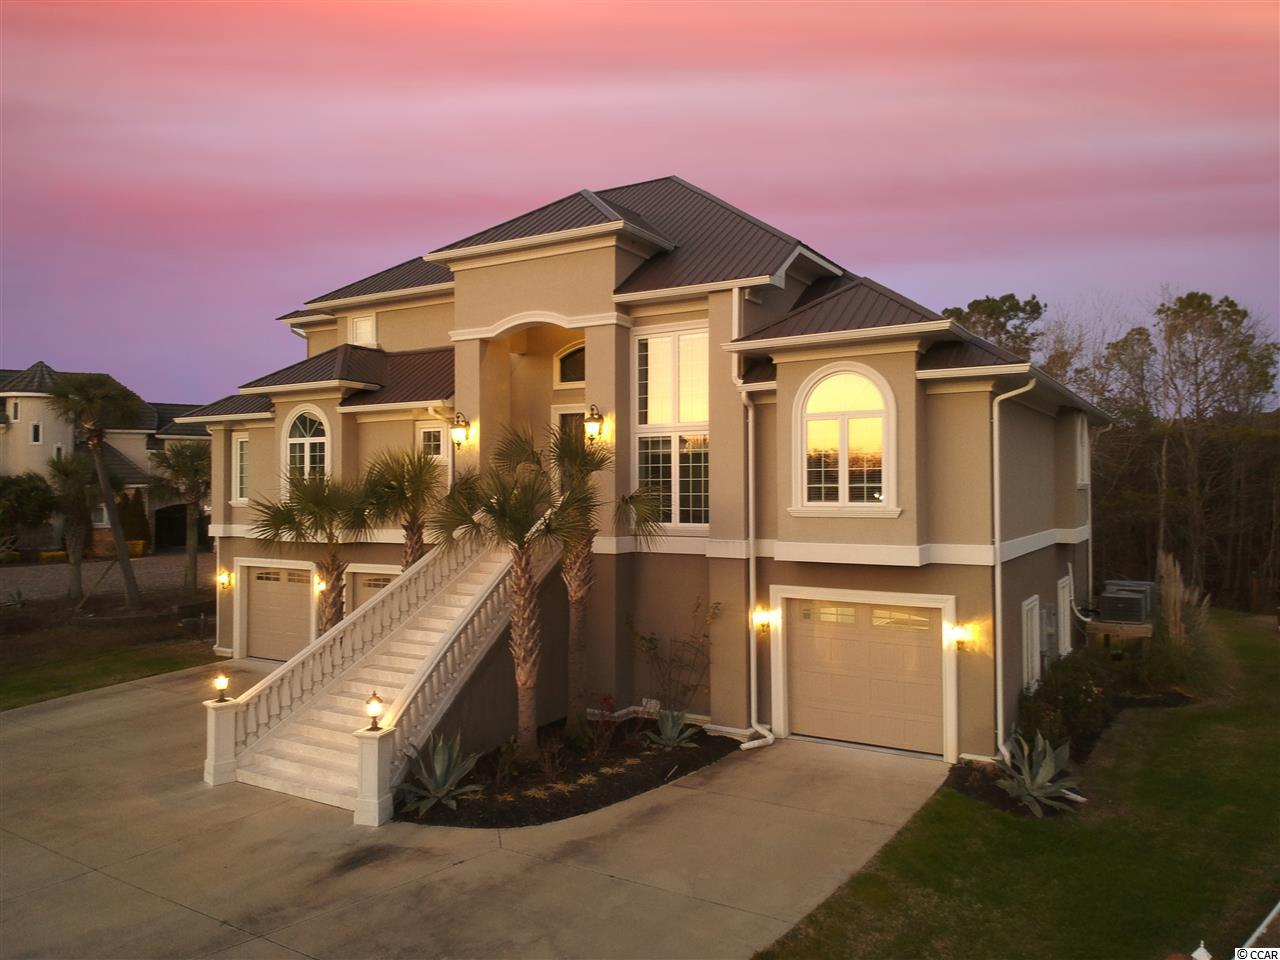 This elegant custom-built, 4-year-old home boasts three beautifully maintained levels, accessible by dramatic staircase or private elevator.  The residence sits at the edge of a marsh along the Intracoastal Waterway on the west side of Cherry Grove.  A drone view demonstrates this ideal location in an upscale neighborhood without HOA.  This one-of-a-kind gem, perfectly highlights the unique designer touches throughout.  First time to market with only one owner.  The main floor contains a dramatic two-story living area, complete with modern ventless fireplace and unique one-story lighting fixture.  Beautiful furnishings are included with this property, such as custom sofas and tables, electronics and custom window treatments (remote-control sheers in living area).  The open design incorporates a stunning dining area and fully accessible kitchen.  The envy of every chef...stainless steel appliances compliment quartz countertops and 6-burner, with integral griddle stove.  Each night relax to the jewel of the house...the master suite.  The master encompasses the entire third floor with stunning views of the Intracoastal from the two-person, jetted bathtub.  His and her sinks as well as walk-in shower allow space for both, along with an incredibly large closet with built-ins to satisfy any designer diva.  Fall asleep in the custom-made king-size platform bed while watching the fire dance in the see-through fireplace.  Storage is abundant with parking for 5 vehicles in dual garages.  Additionally, boats and other toys can be stored to the side, as no HOA exists to restrict.     Four full bedrooms with 3.5 baths incorporate enough room for family time and comfortable entertaining of friends.  A California bathroom connects two of the three spacious bedrooms on the main floor and roomy walk-in closets were designed for great storage.  The base level has been finished for an additional 925 usable, heated square feet which can be utilized as a separate playroom, in-home theater or private office.  The backyard is expansive enough to add a pool.   Three decks along the back of the house provide for outside entertaining with marsh views, complete with full furnishings and CAT 5/6 power hook-ups hook-ups for your favorite electronics on the ground floor.